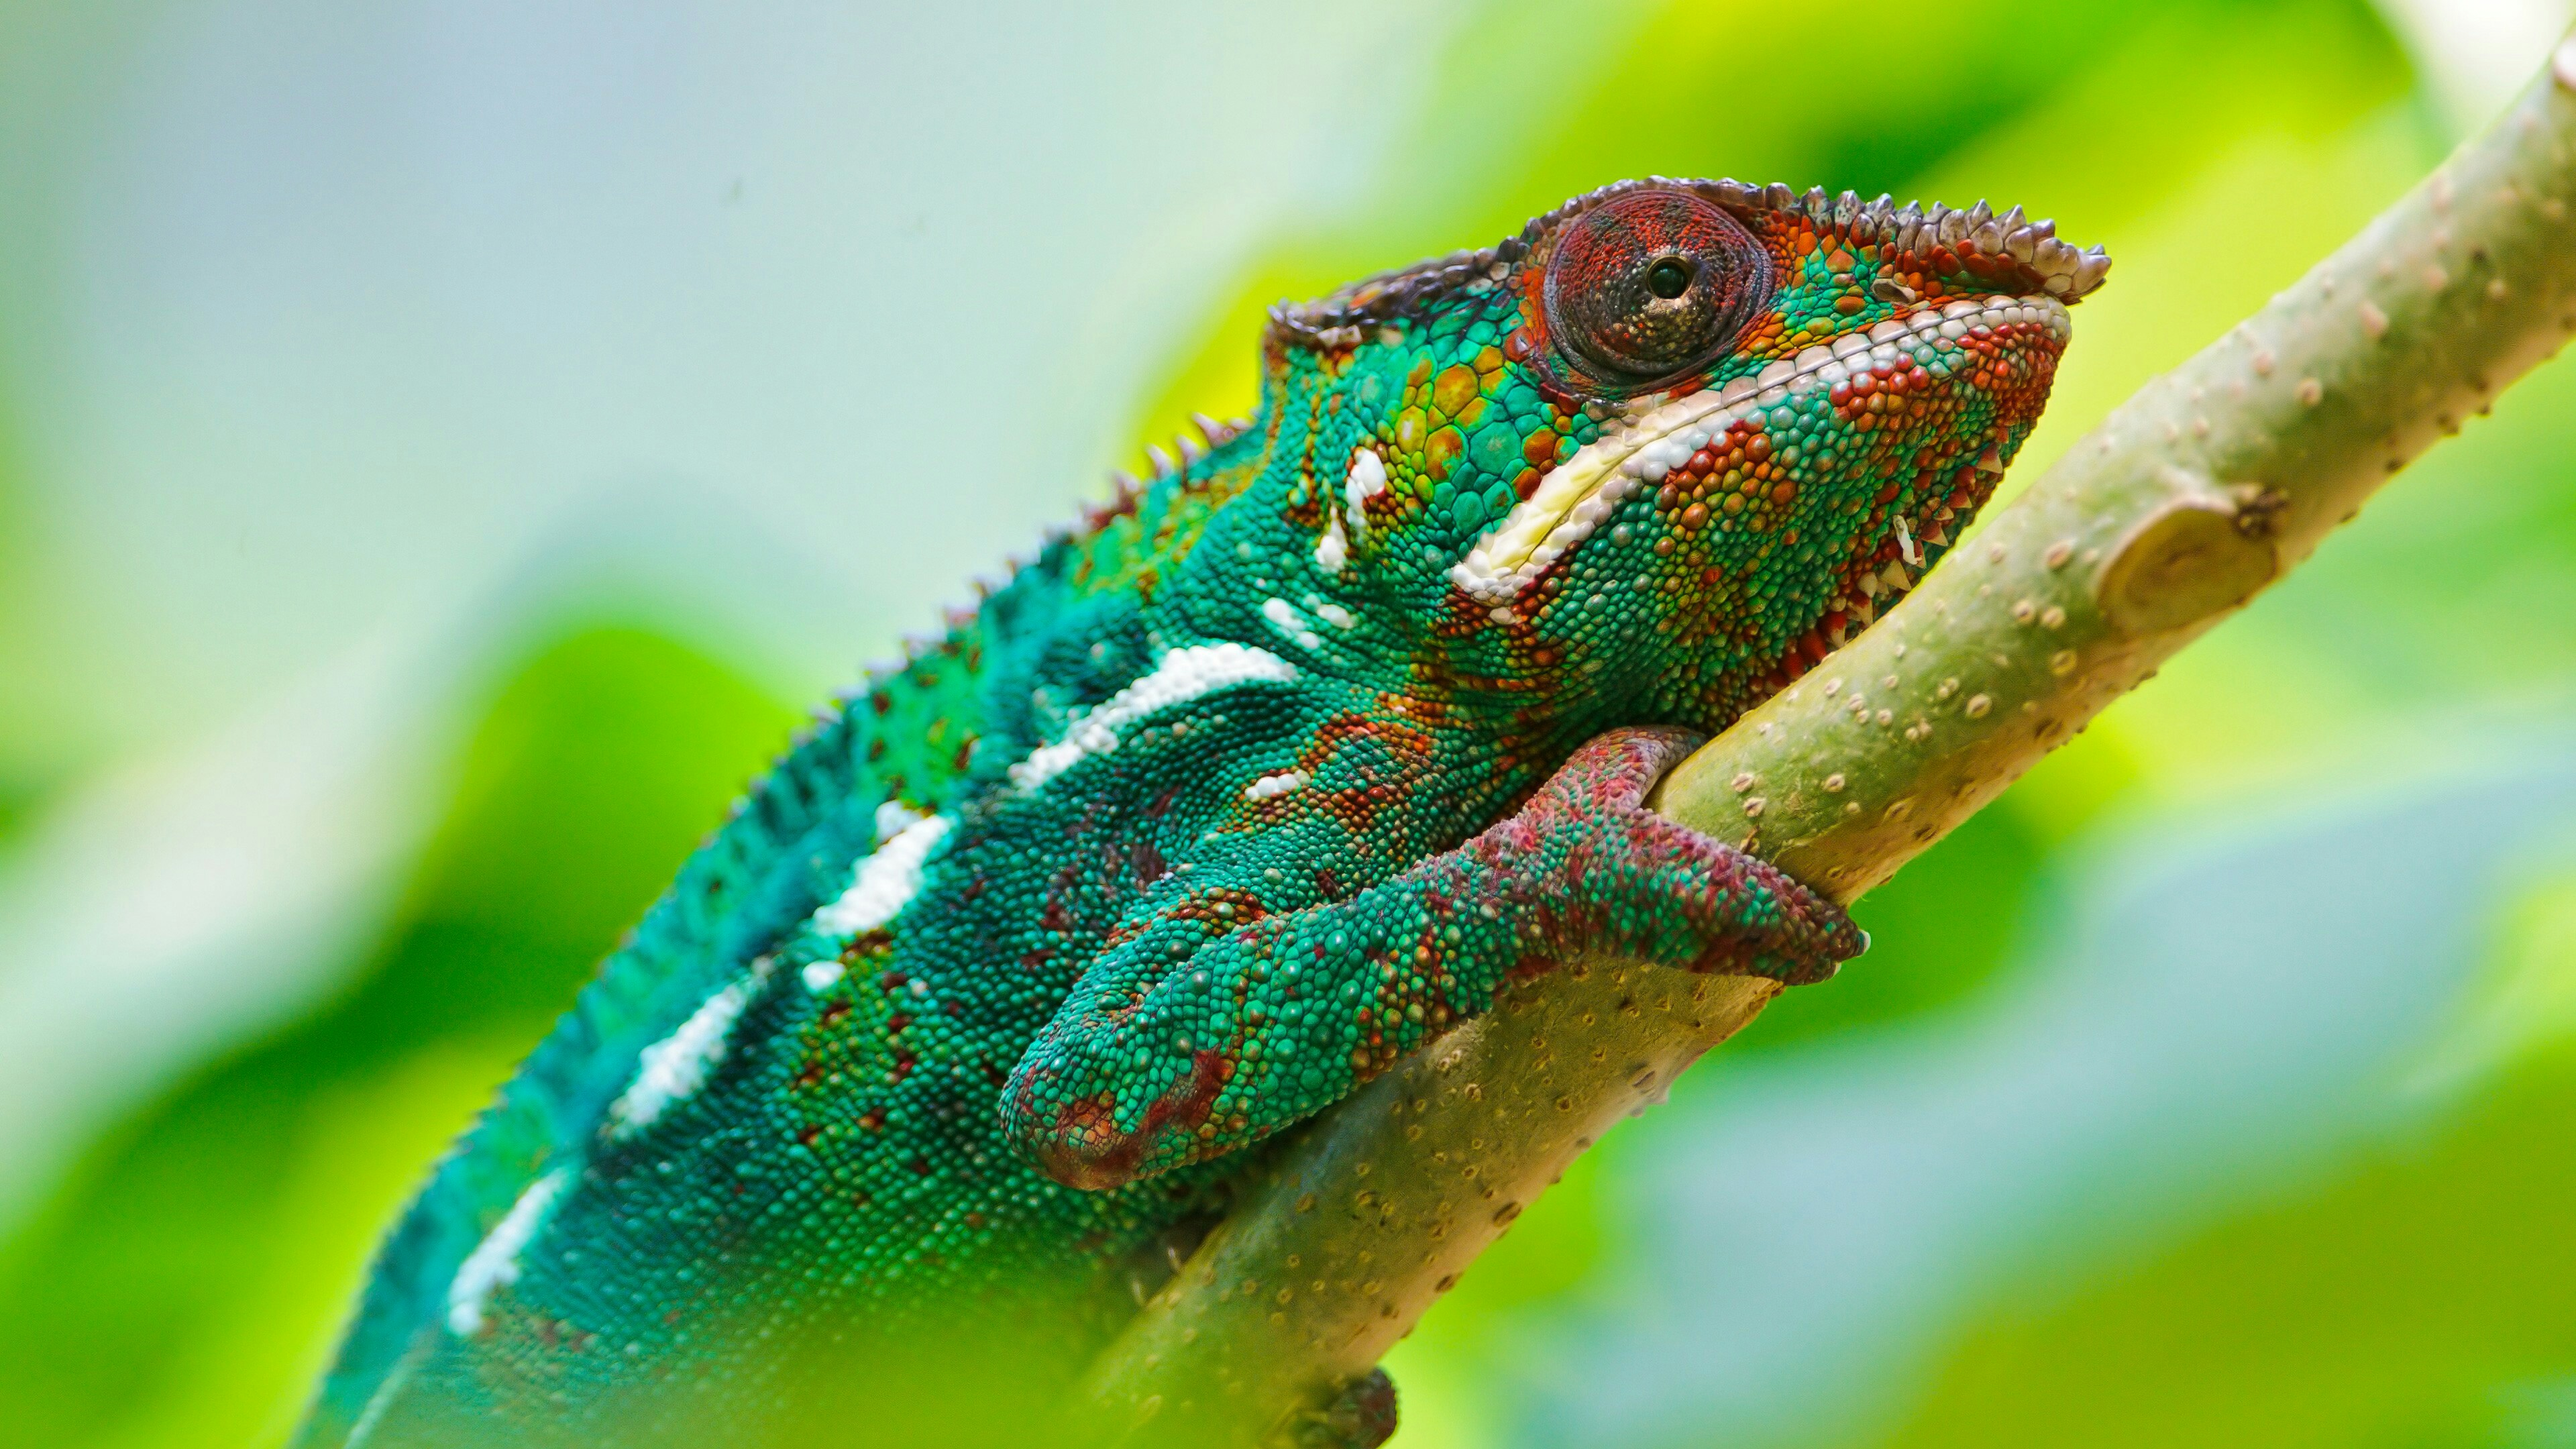 Colorful Chameleon 4K UltraHD Wallpapers